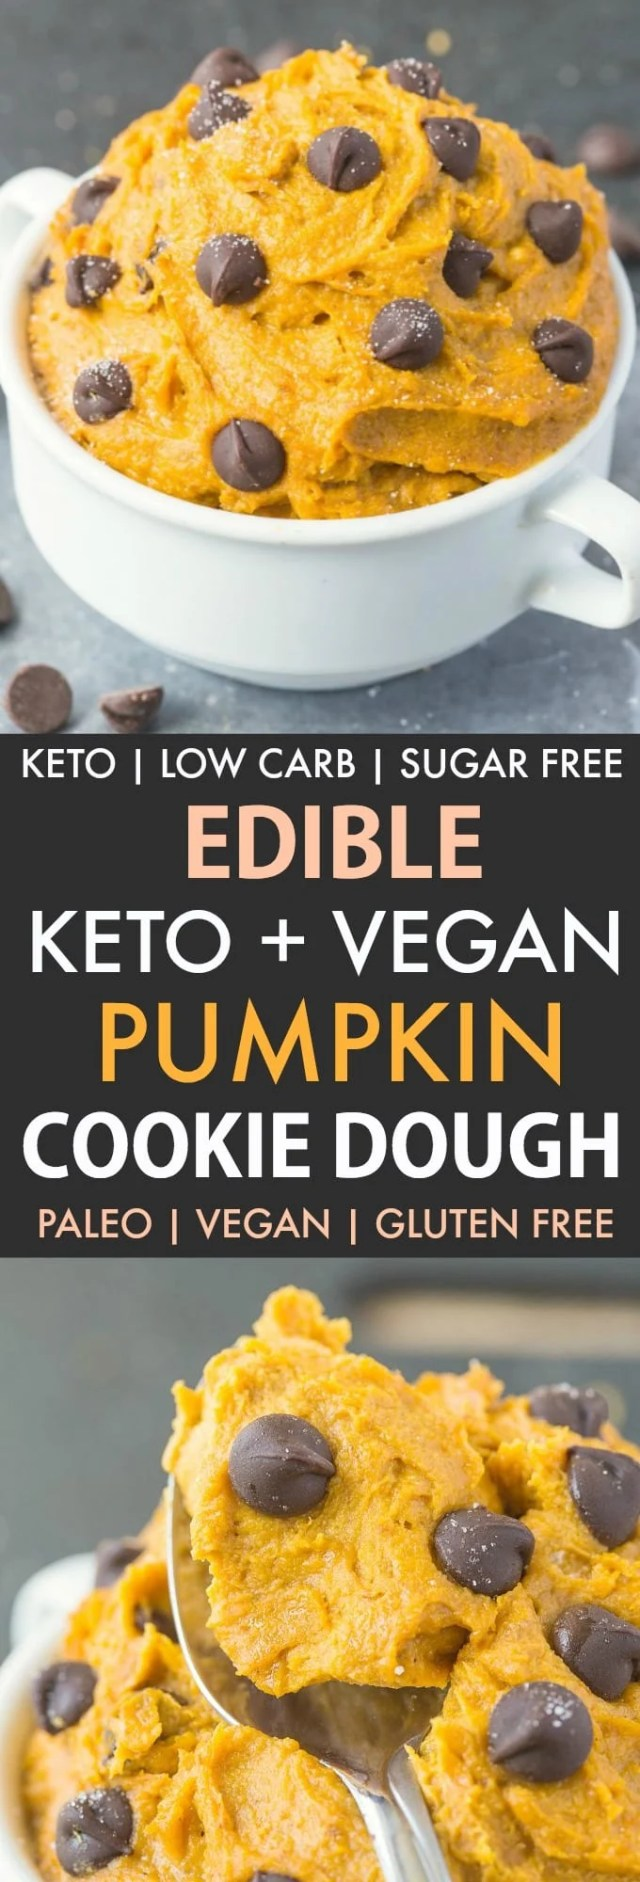 Healthy Paleo Vegan Pumpkin Cookie Dough in a white bowl and collage